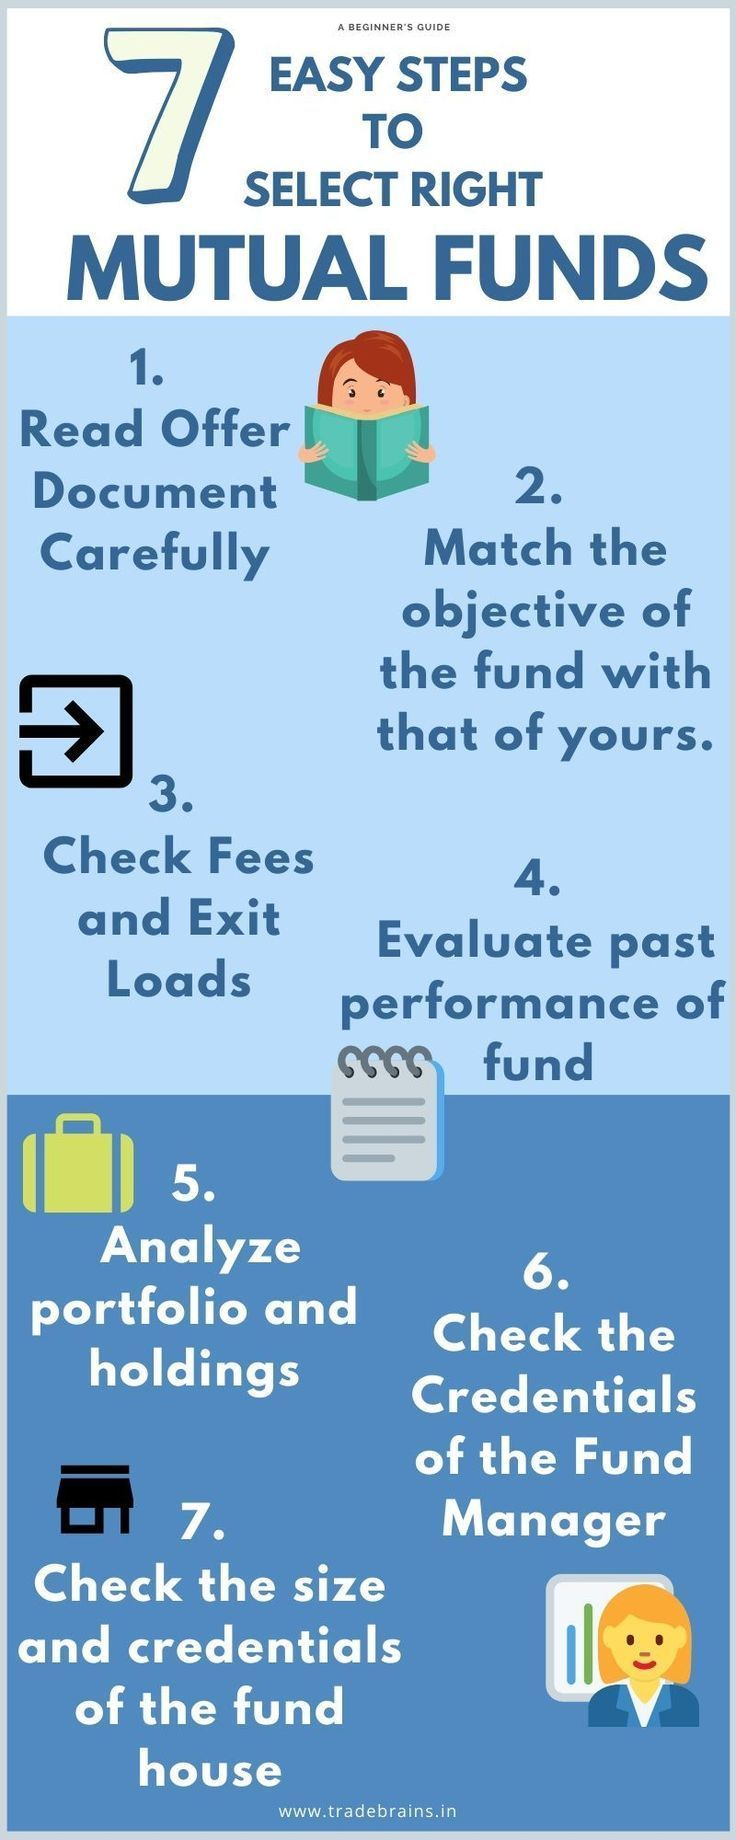 The Beginners Guide To Select Right Mutual Funds In 7 Easy Steps In 2020 Mutuals Funds Increase Knowledge Beginners Guide